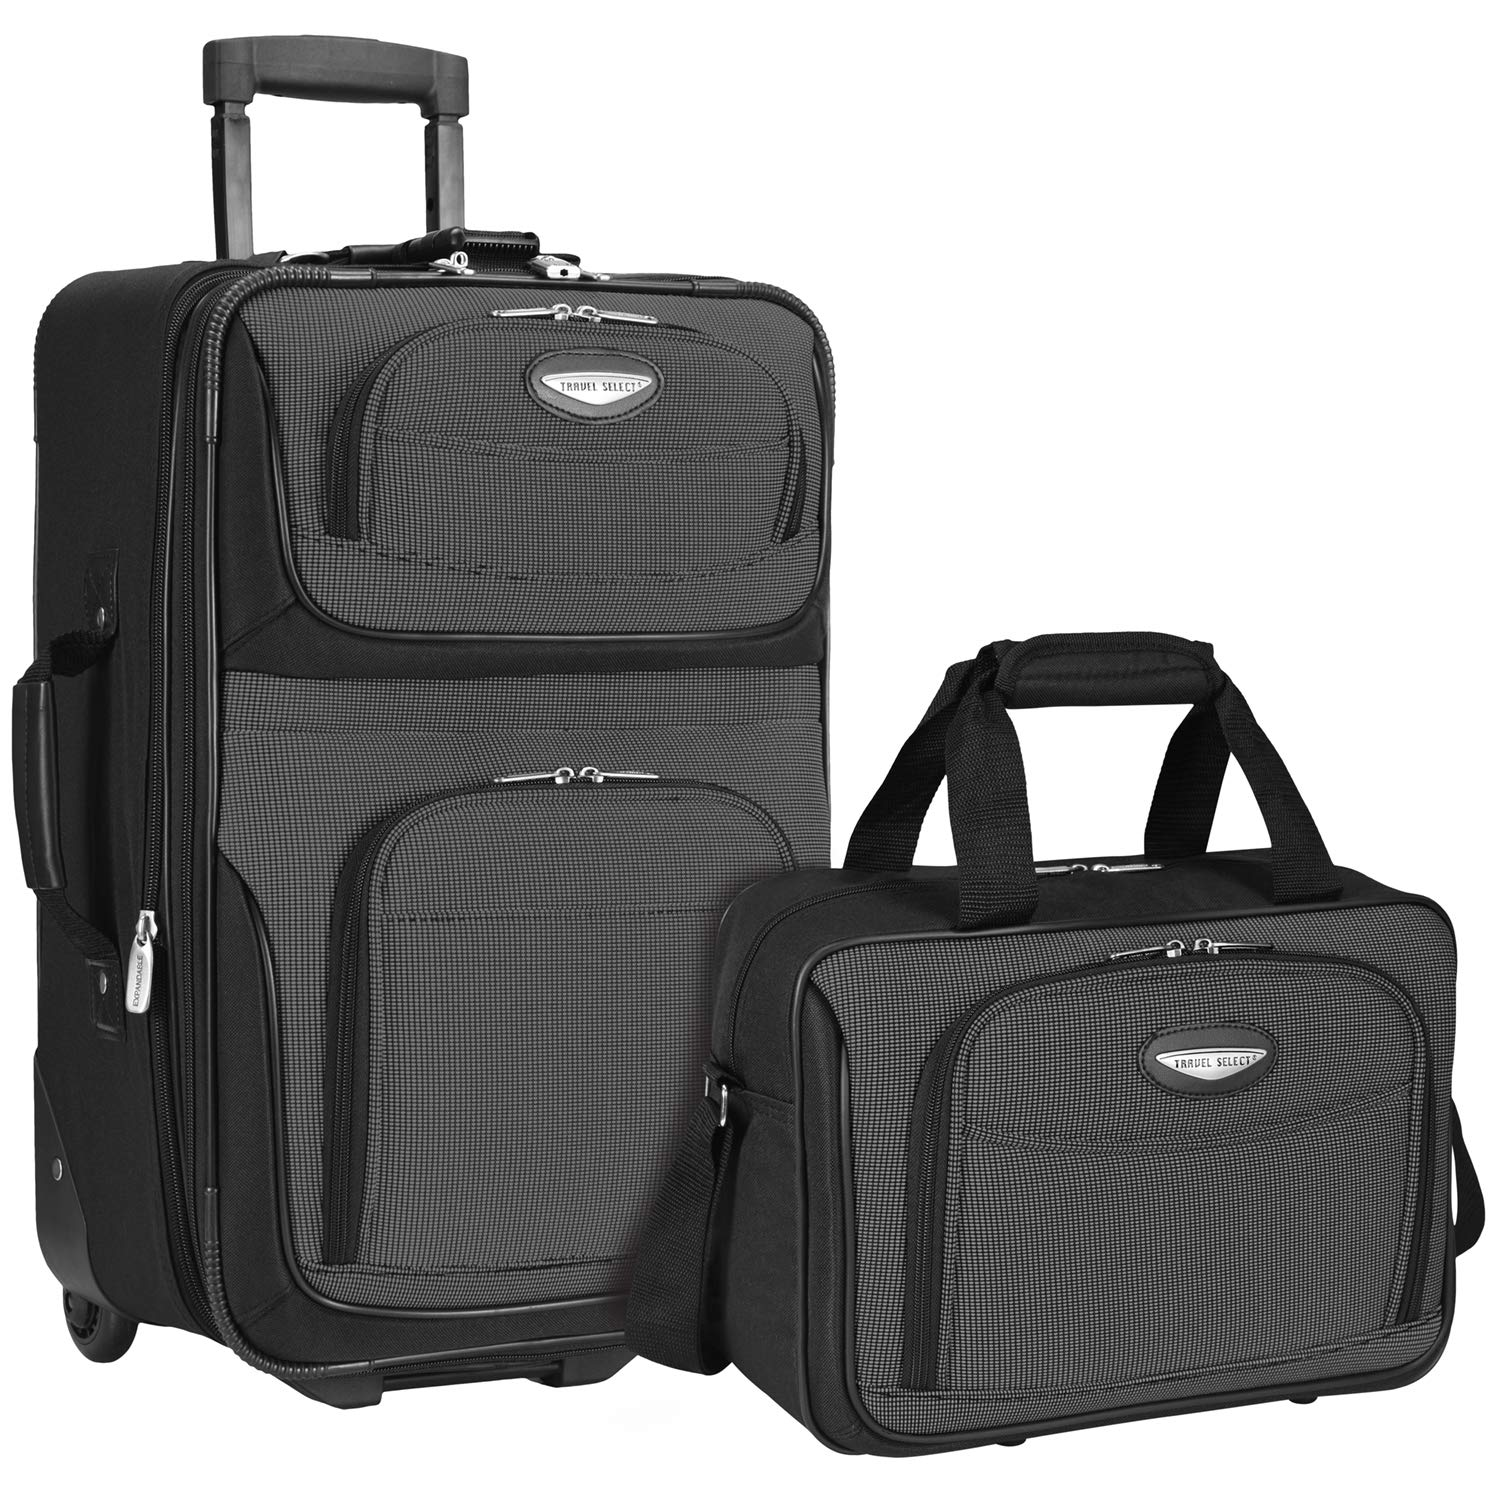 Travel Select Amsterdam 2-Piece Expandable Carry-On Luggage Set, Gray by Travel Select